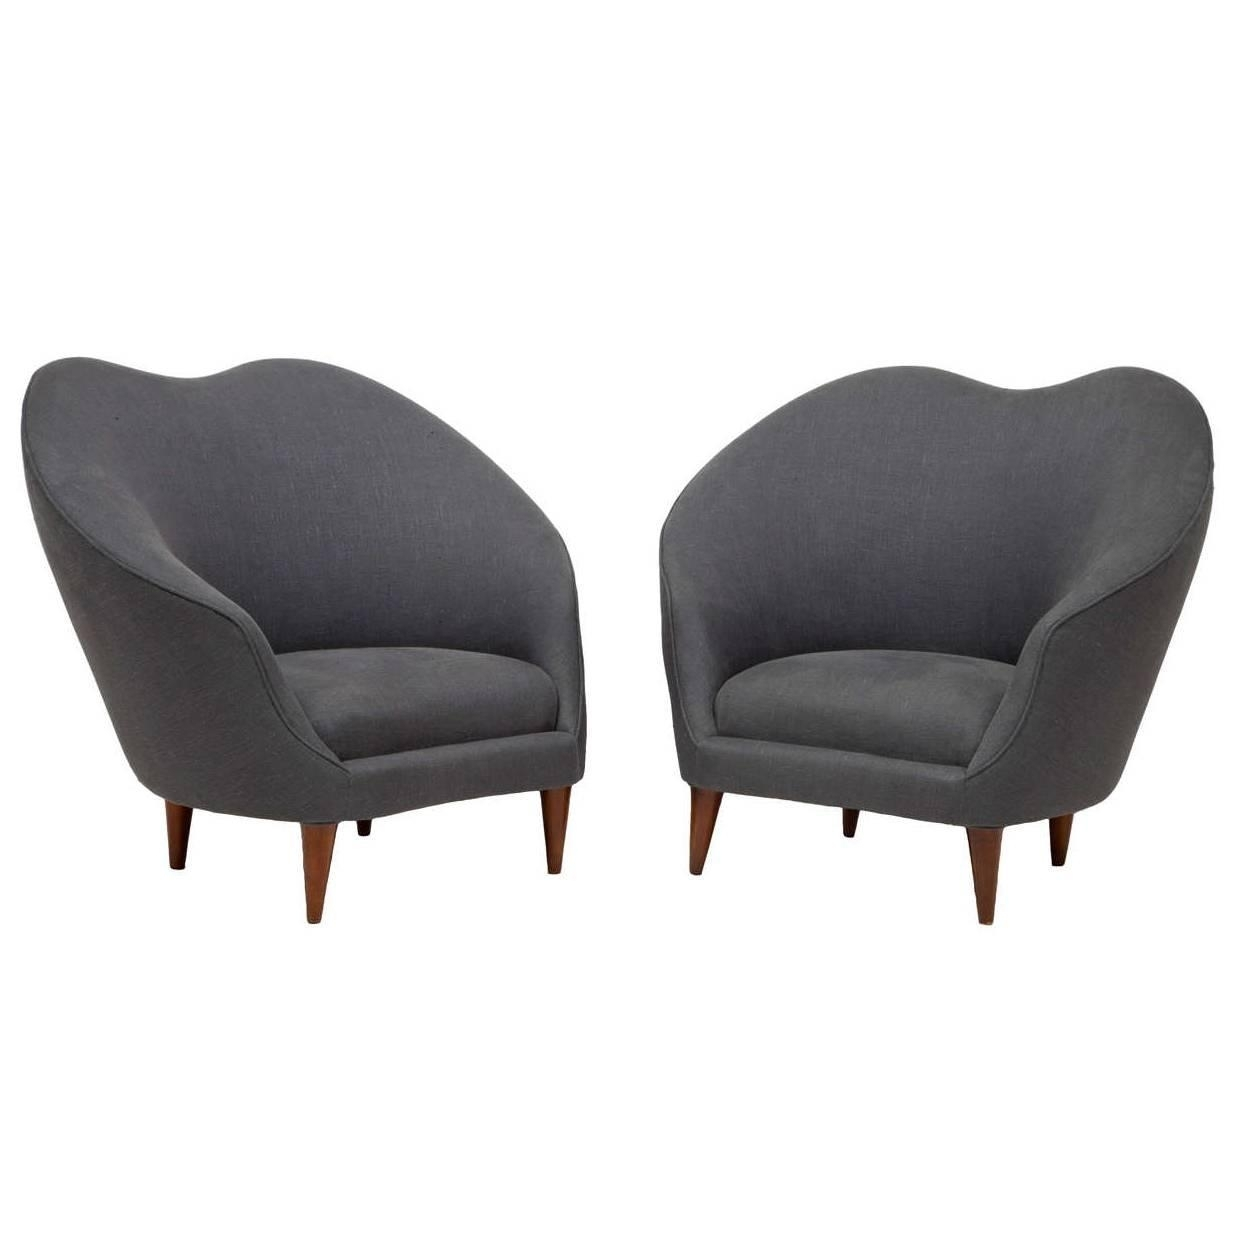 Preferred Pair Of Upholstered Armchairsfederico Munari – Caira Mandaglio Within Caira Upholstered Arm Chairs (#10 of 20)